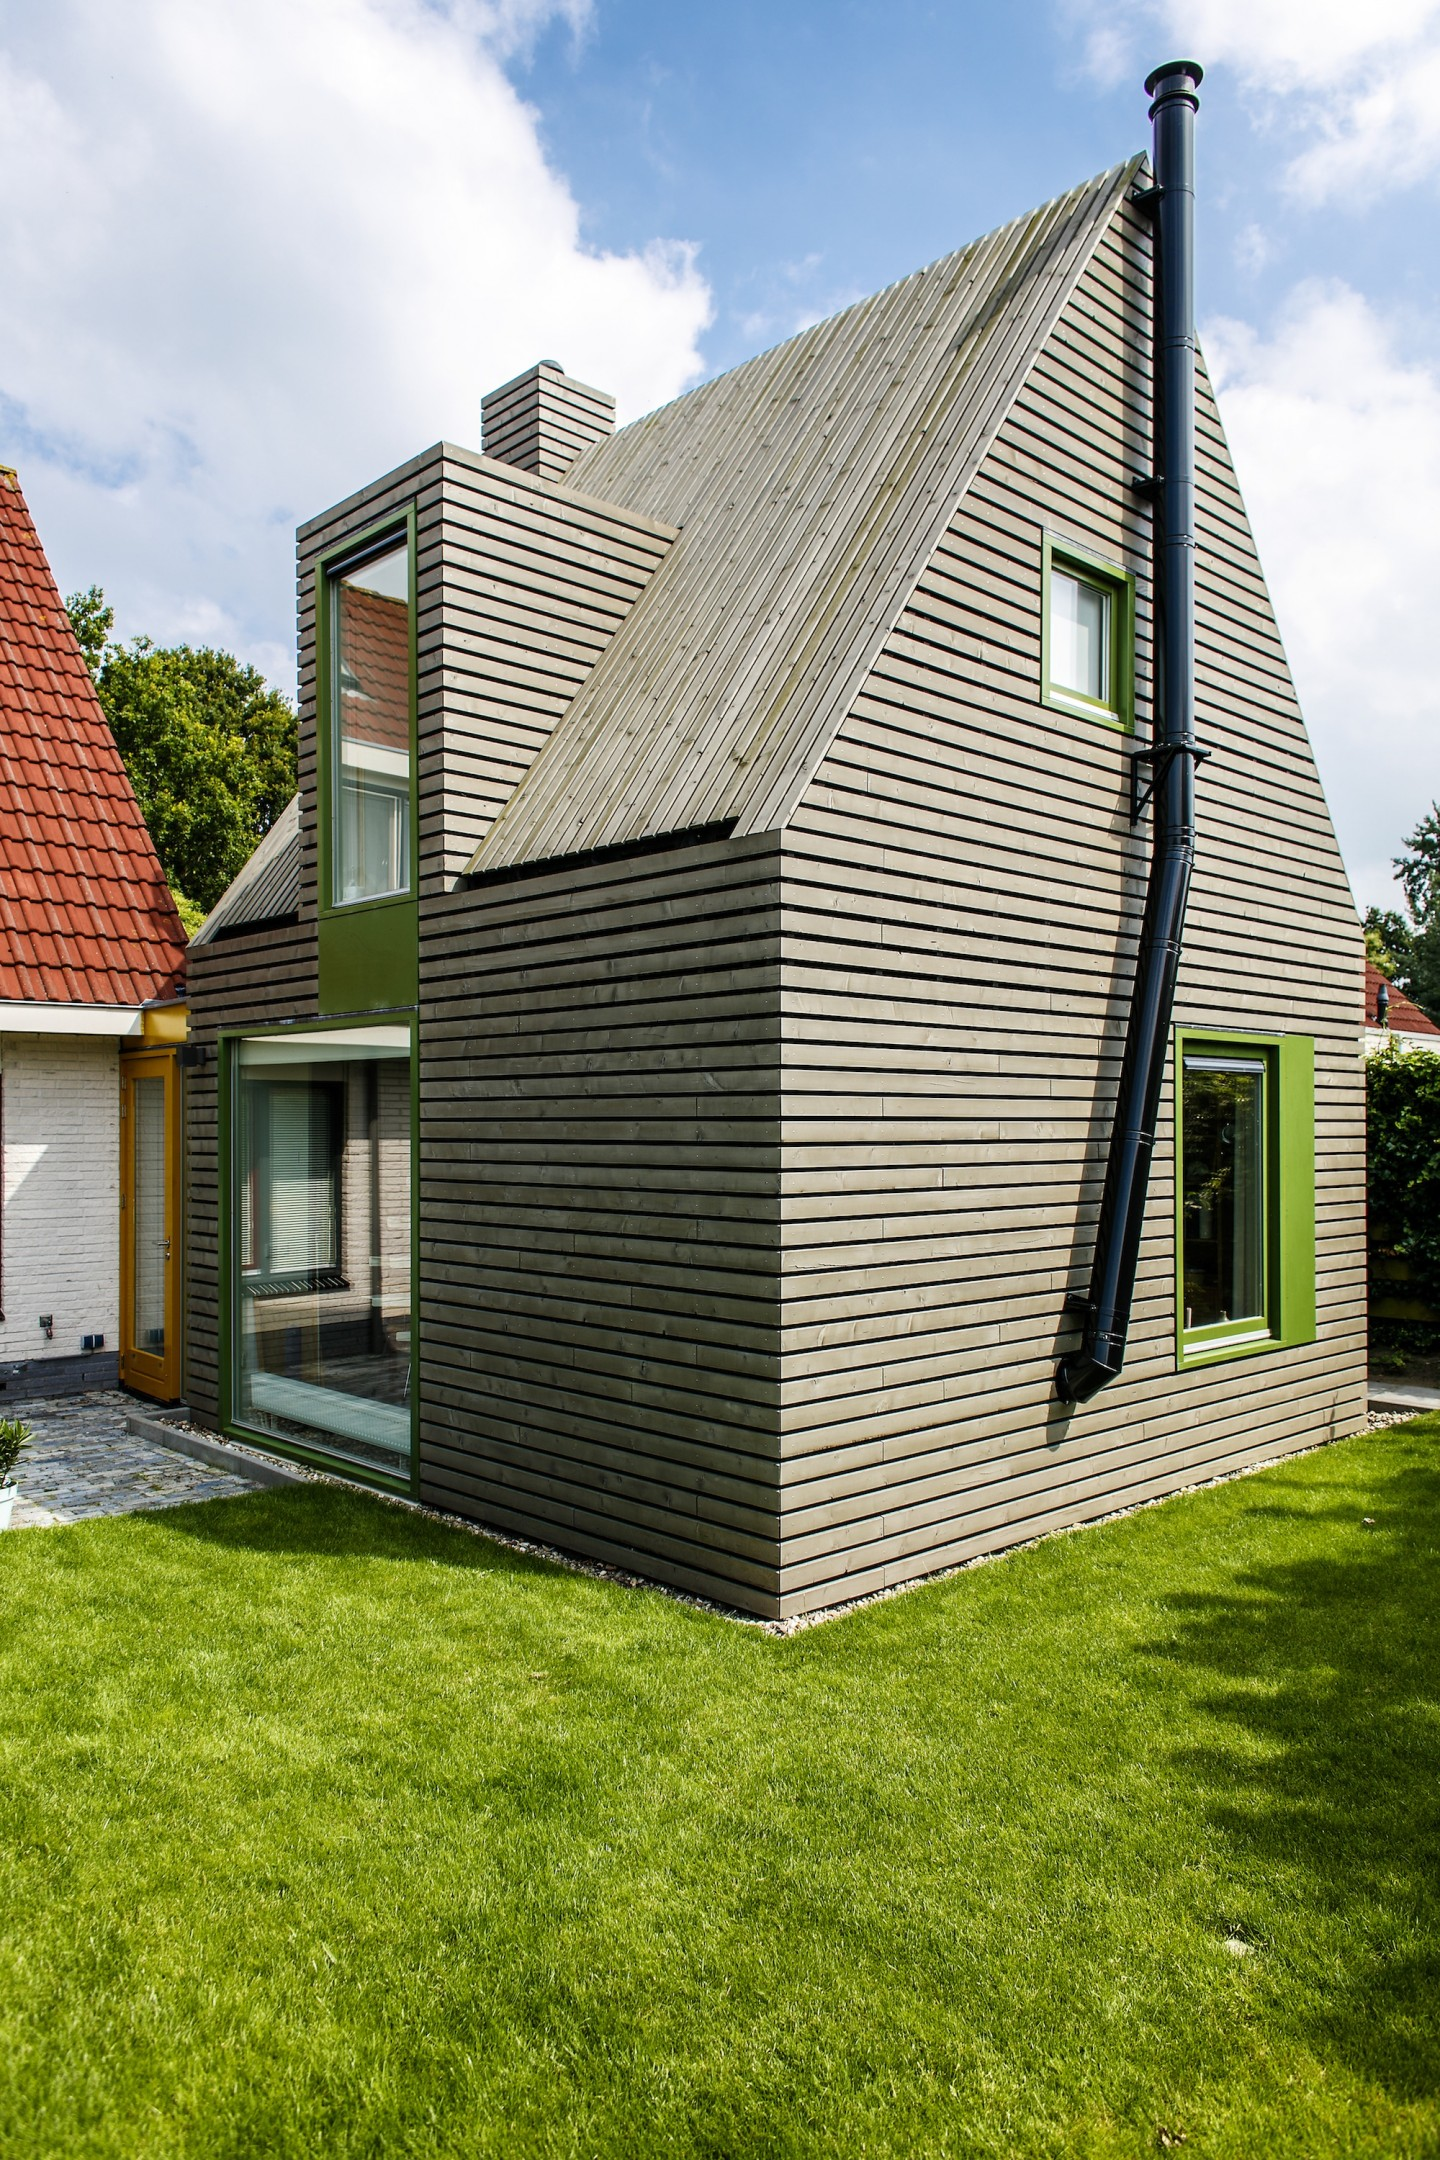 Tiny house - TWA Architecten